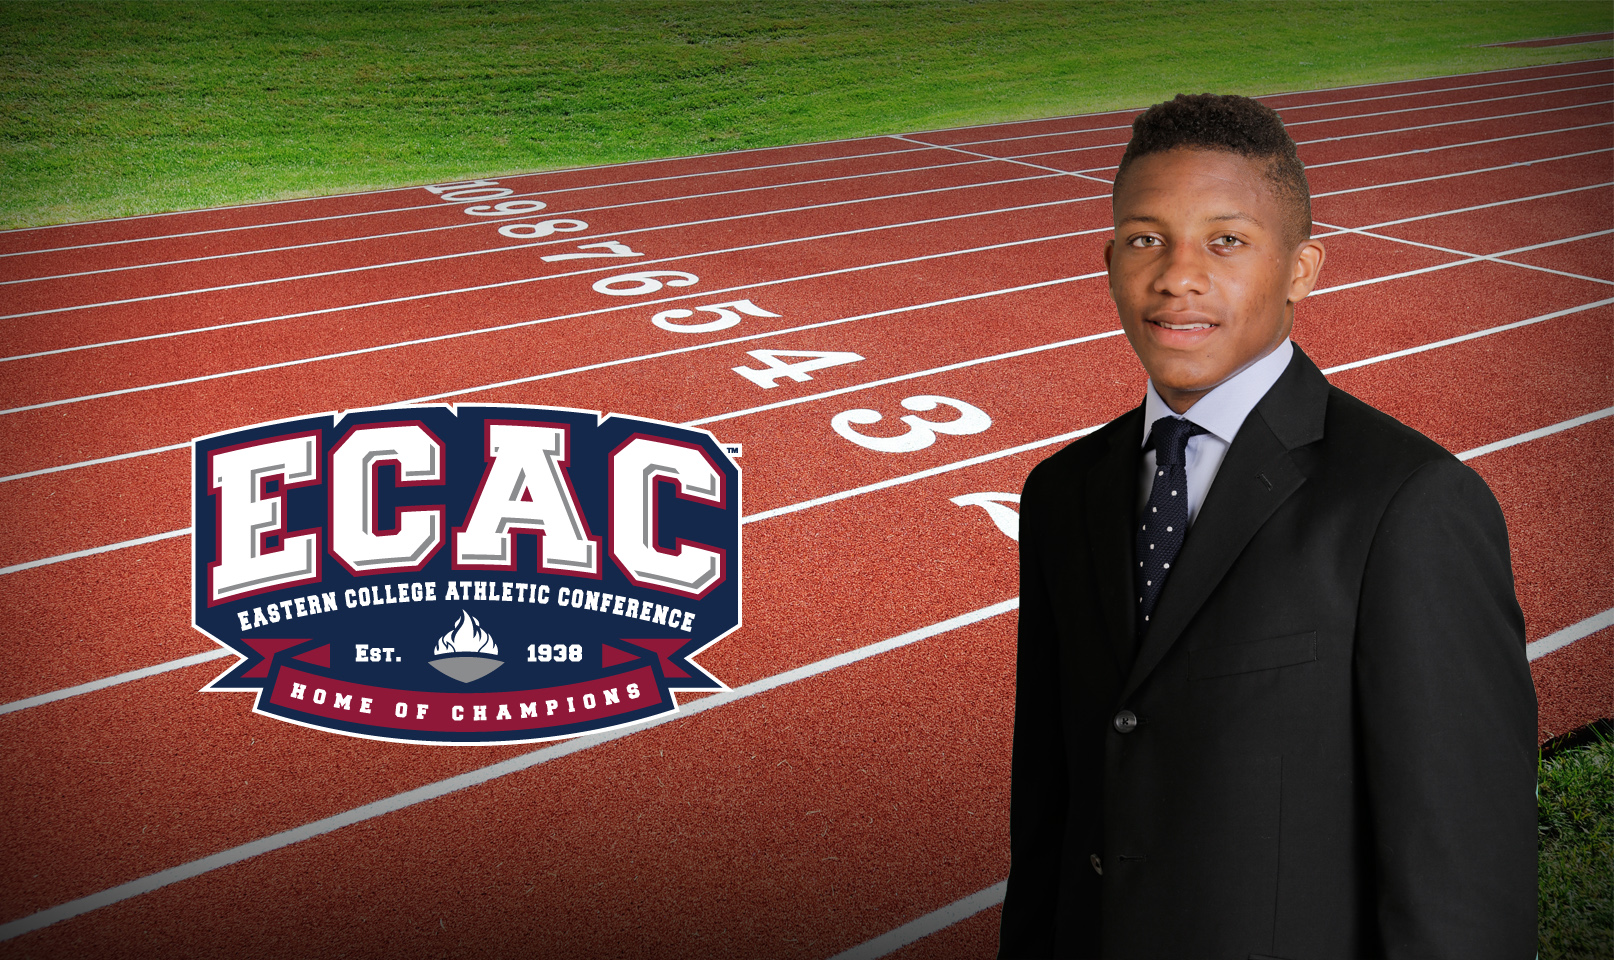 Sallah-Mohammed named ECAC Rookie of the Week